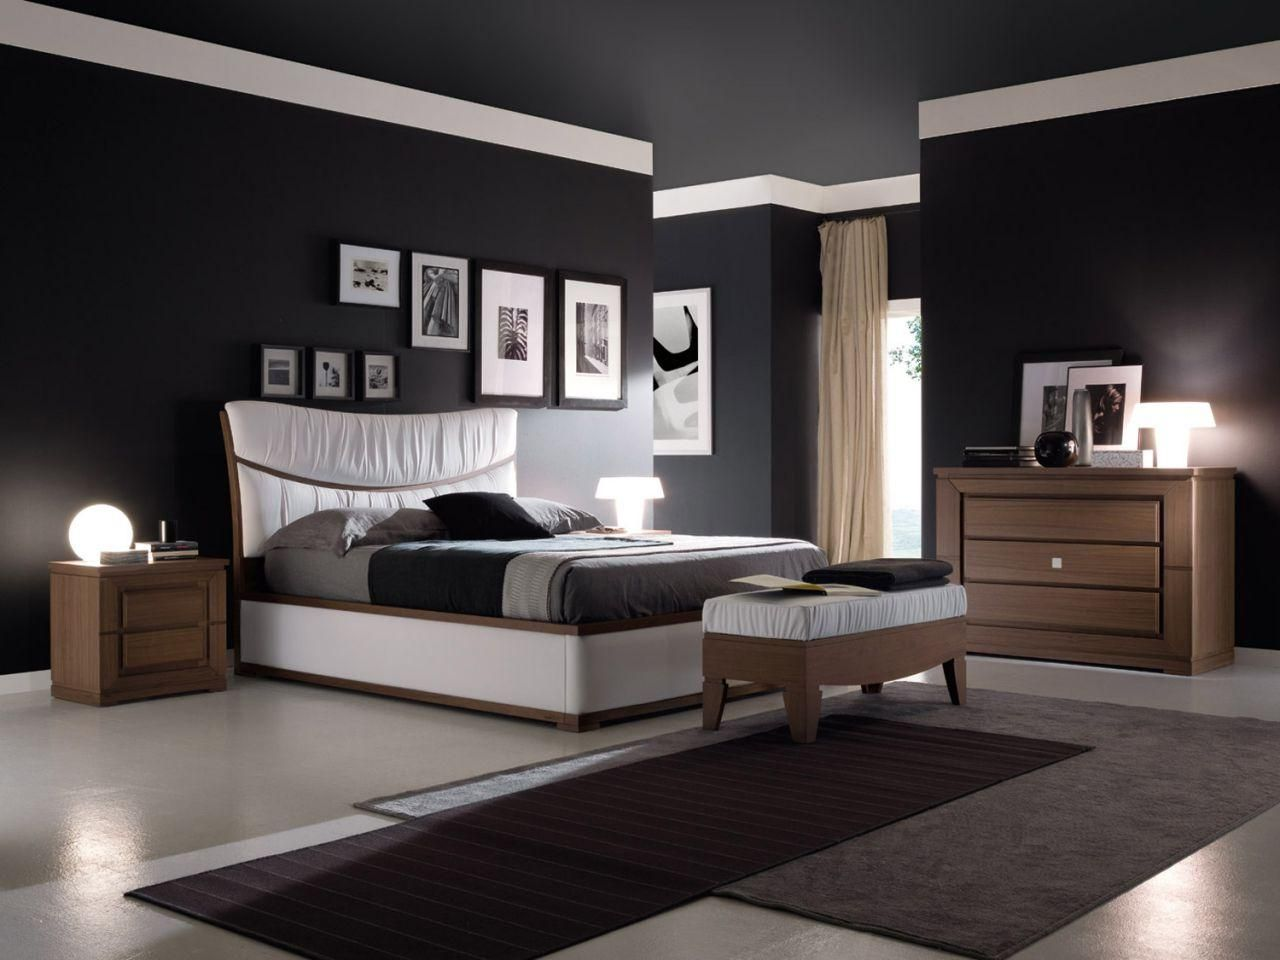 Best Modern Black Wall Ideas For Your Home 15 White Bedroom 400 x 300